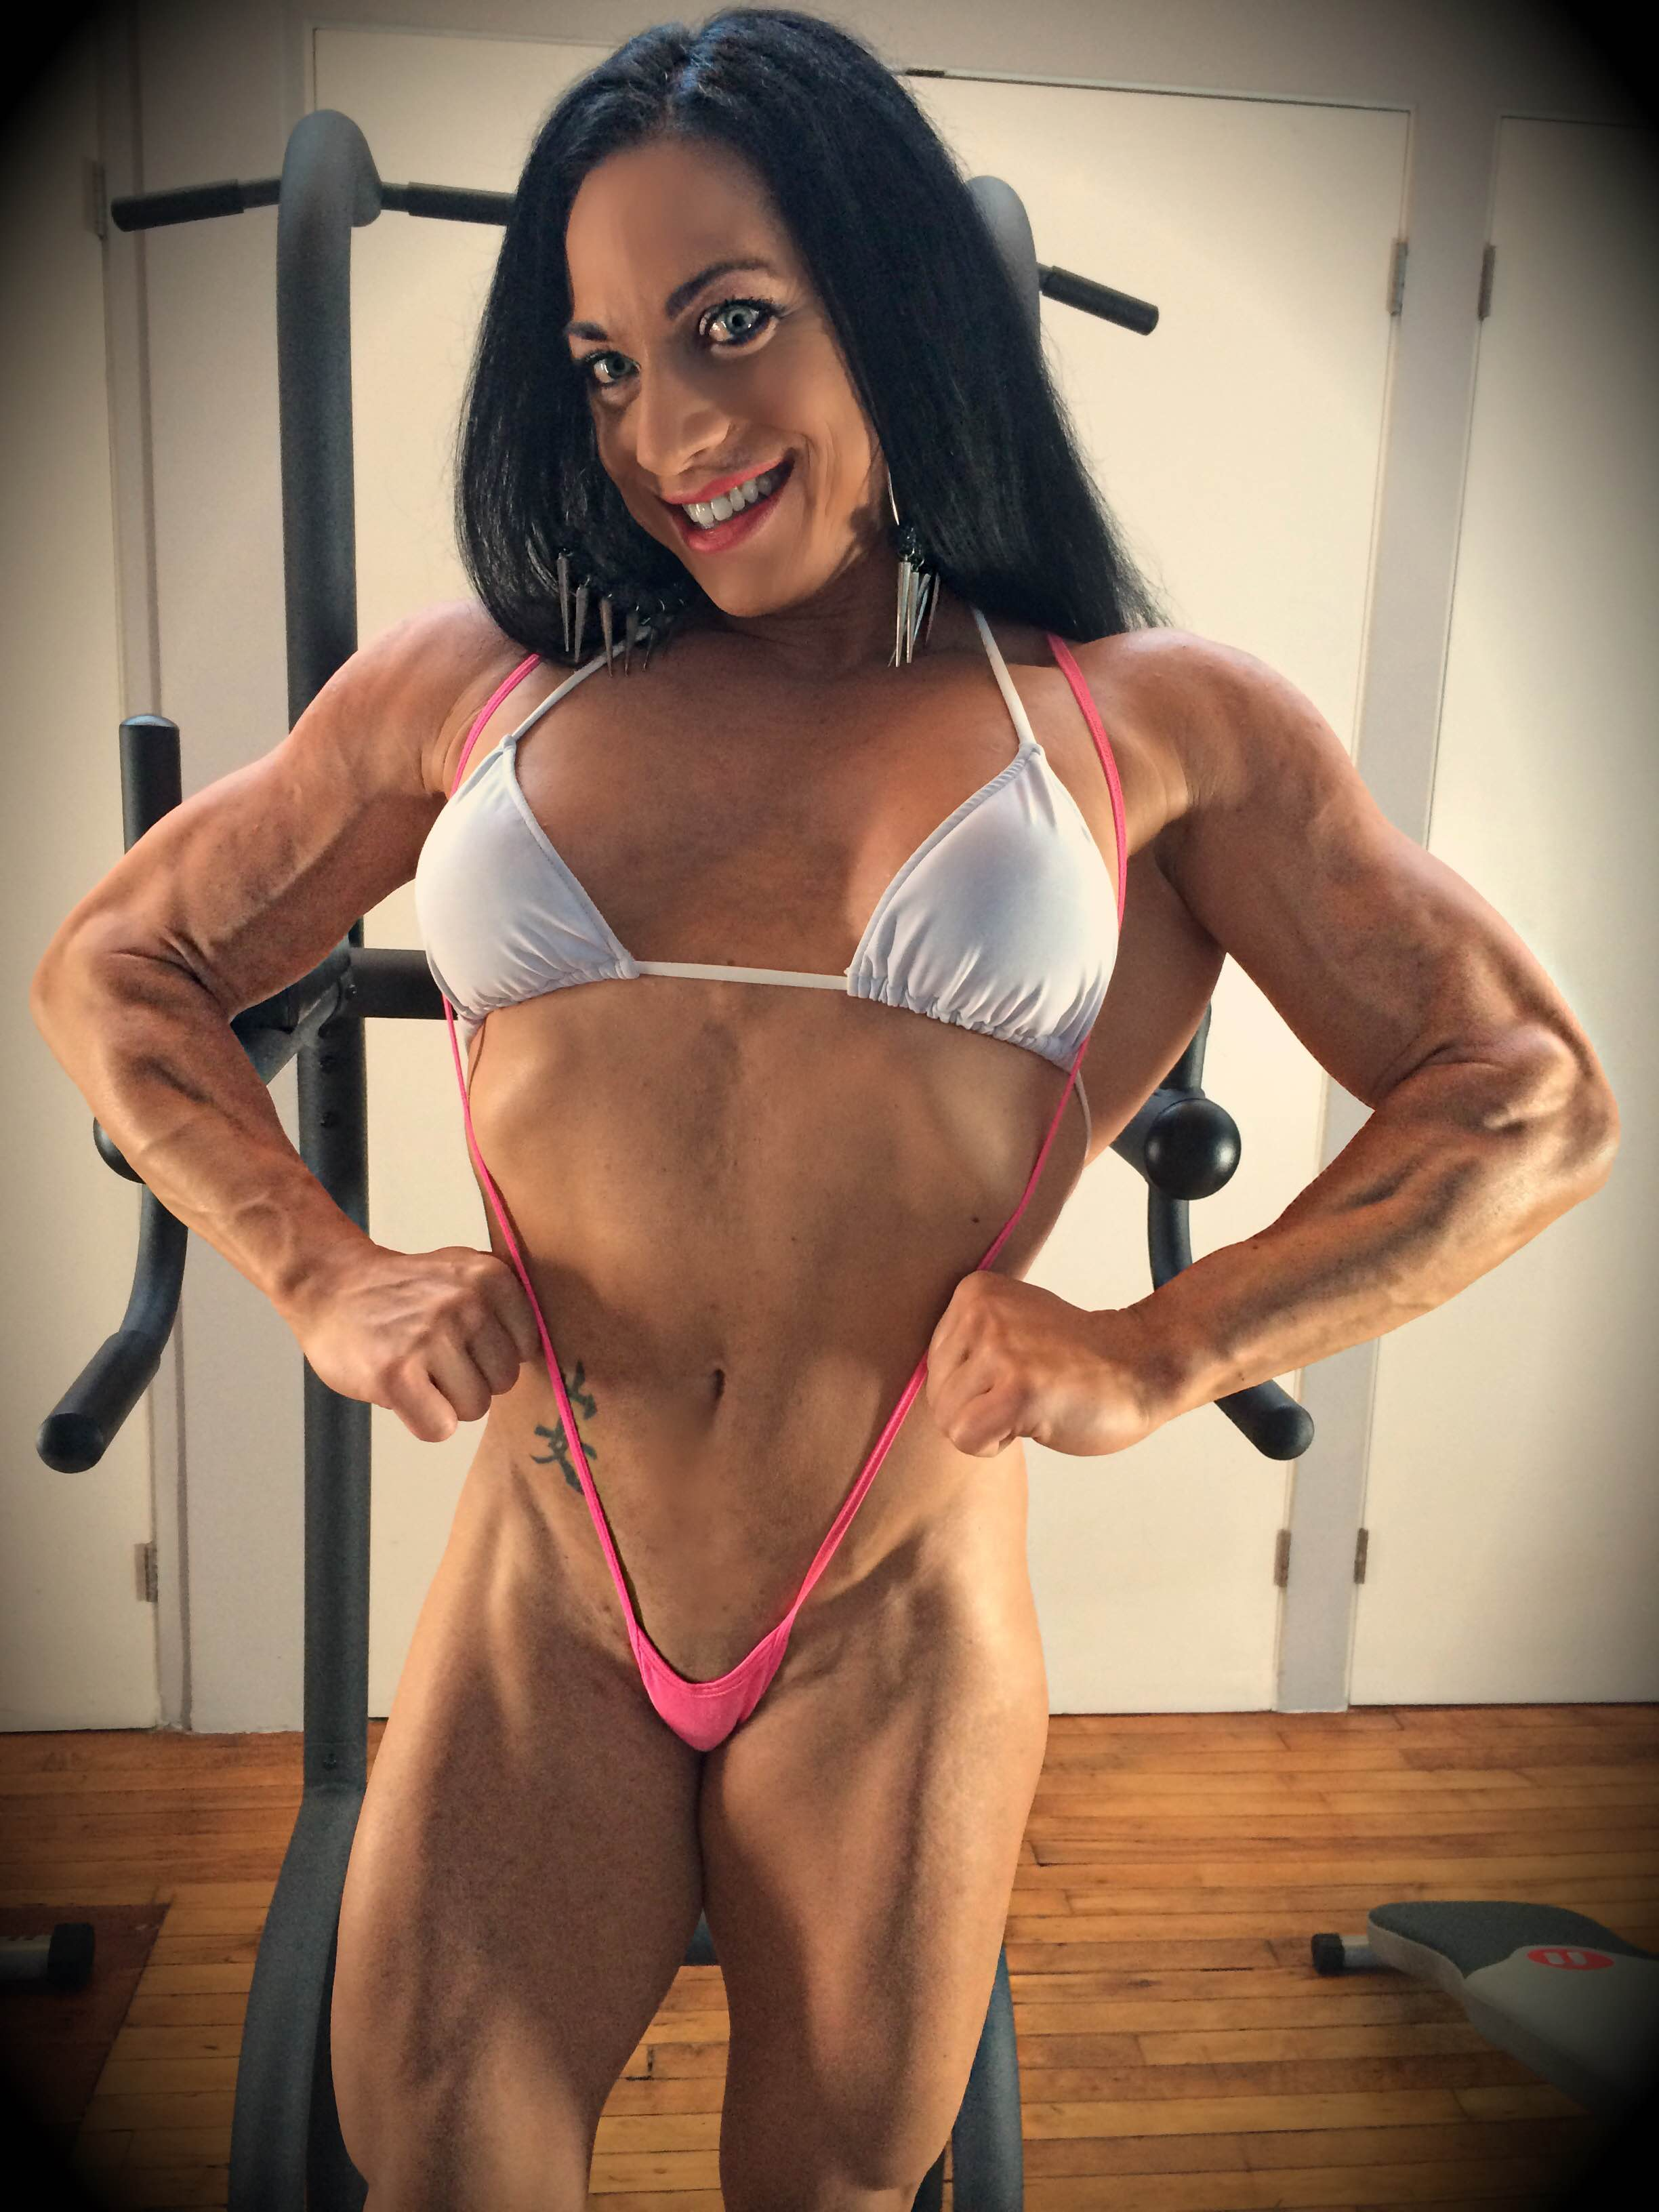 Ripped Vixen front lat spread